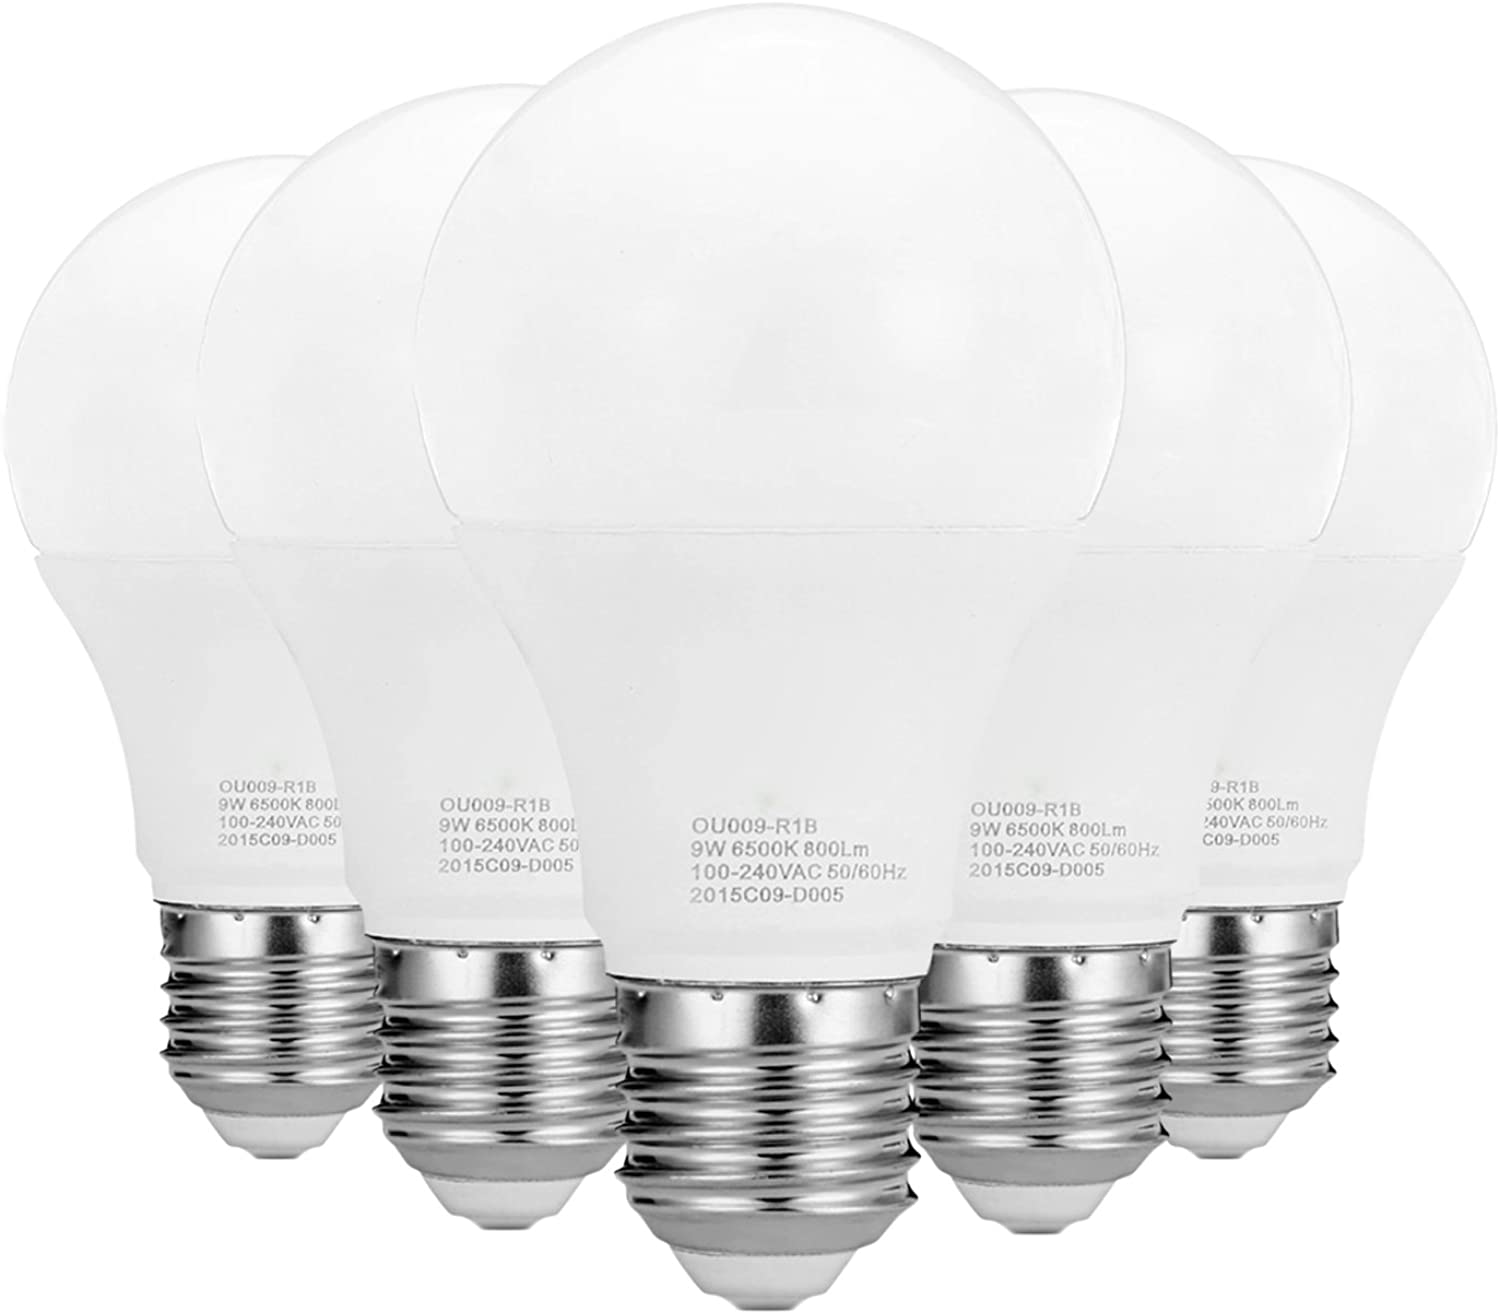 LL LED Ball Light LED NonDimmable A19 9W (800900LM) 2835 SMD E26 Medium Screw Base Warm White Cool White AC 100240V (5Pack) (Size   Warm White)